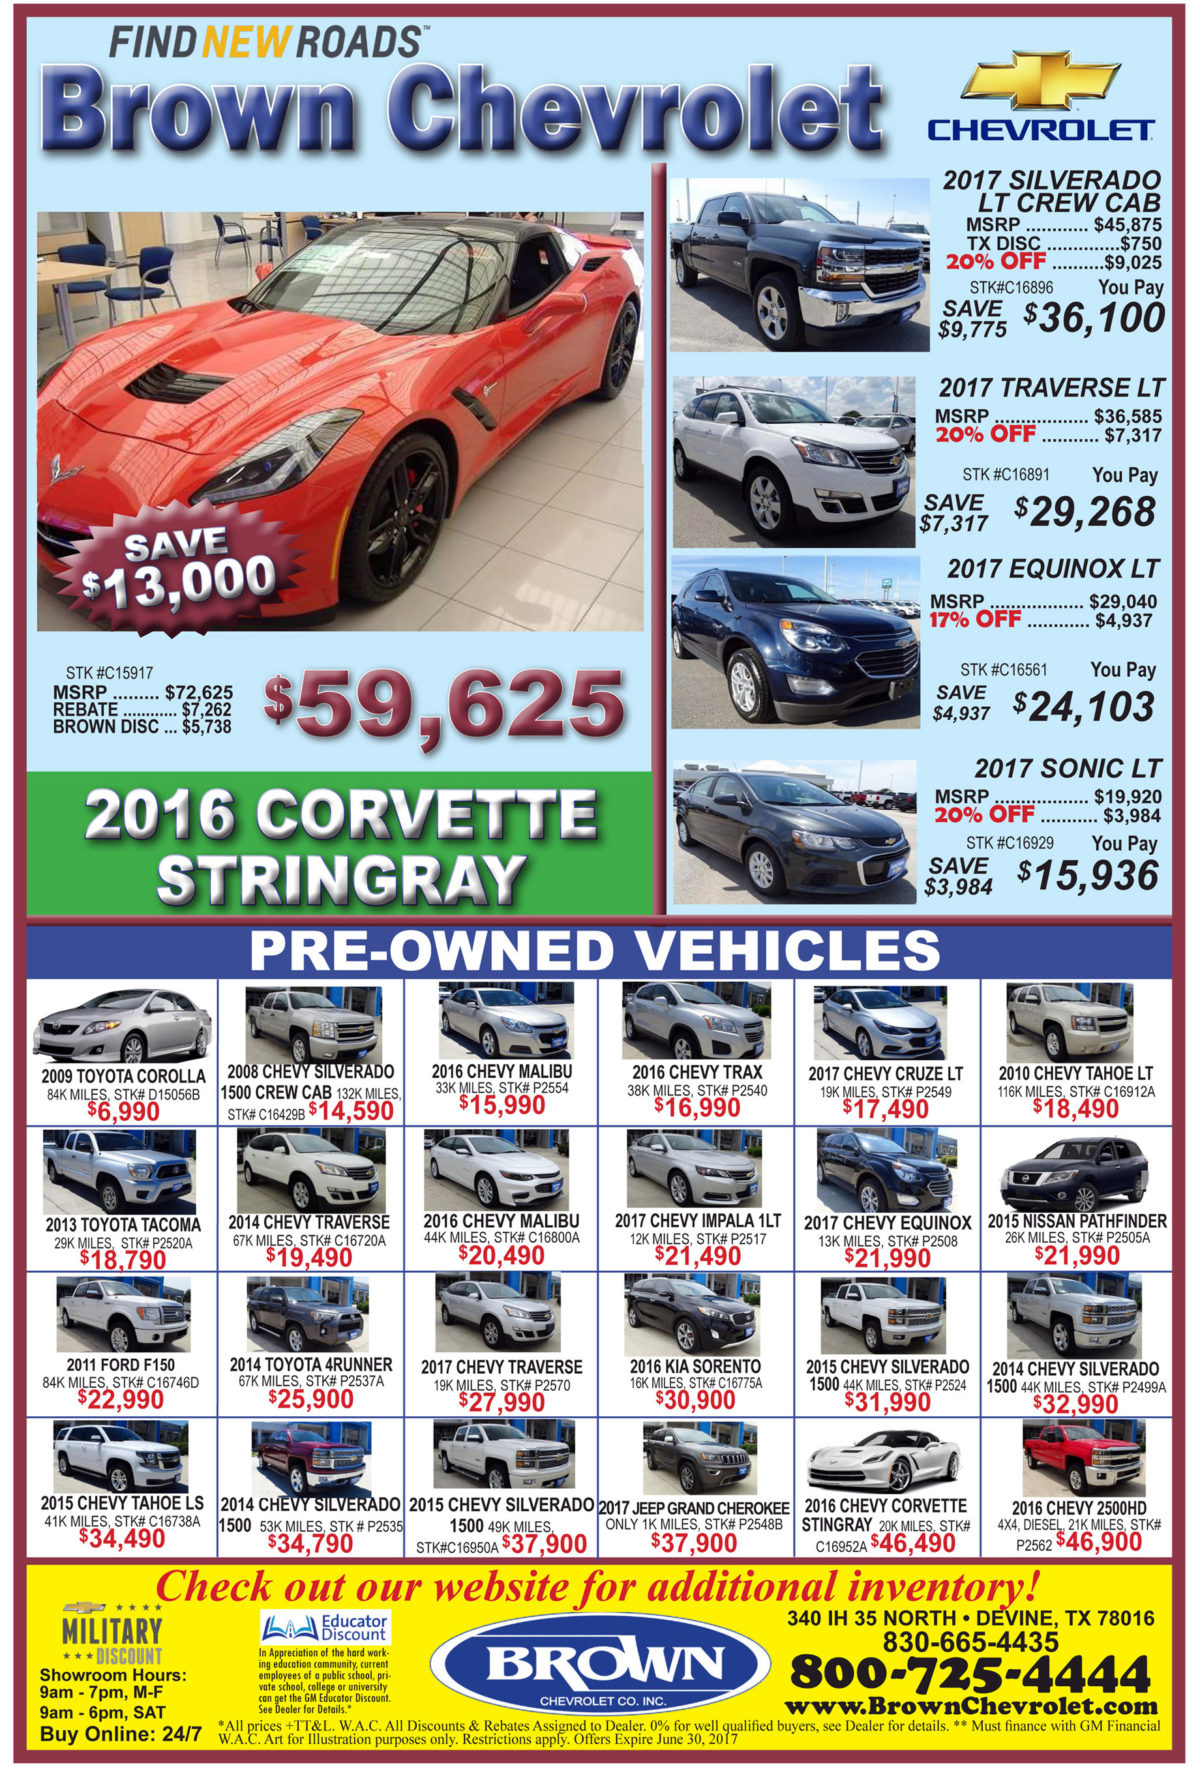 Brown Chevrolet deals for the week of 6-7-17